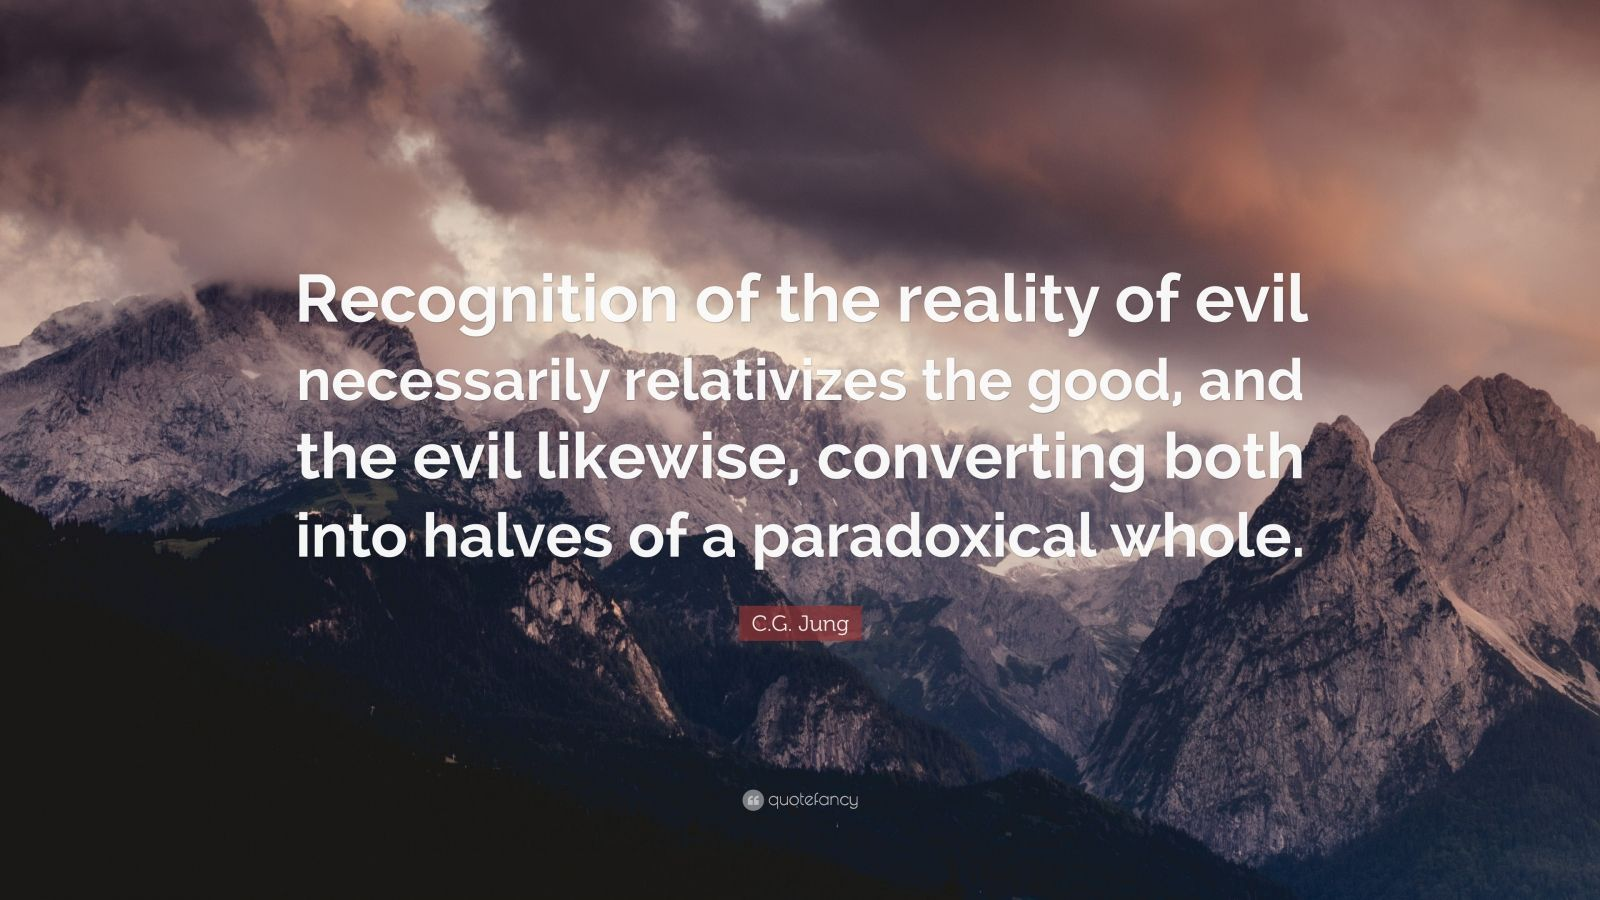 """C.G. Jung Quote: """"Recognition of the reality of evil necessarily relativizes the good, and the evil likewise, converting both into halves of a paradoxical whole."""""""